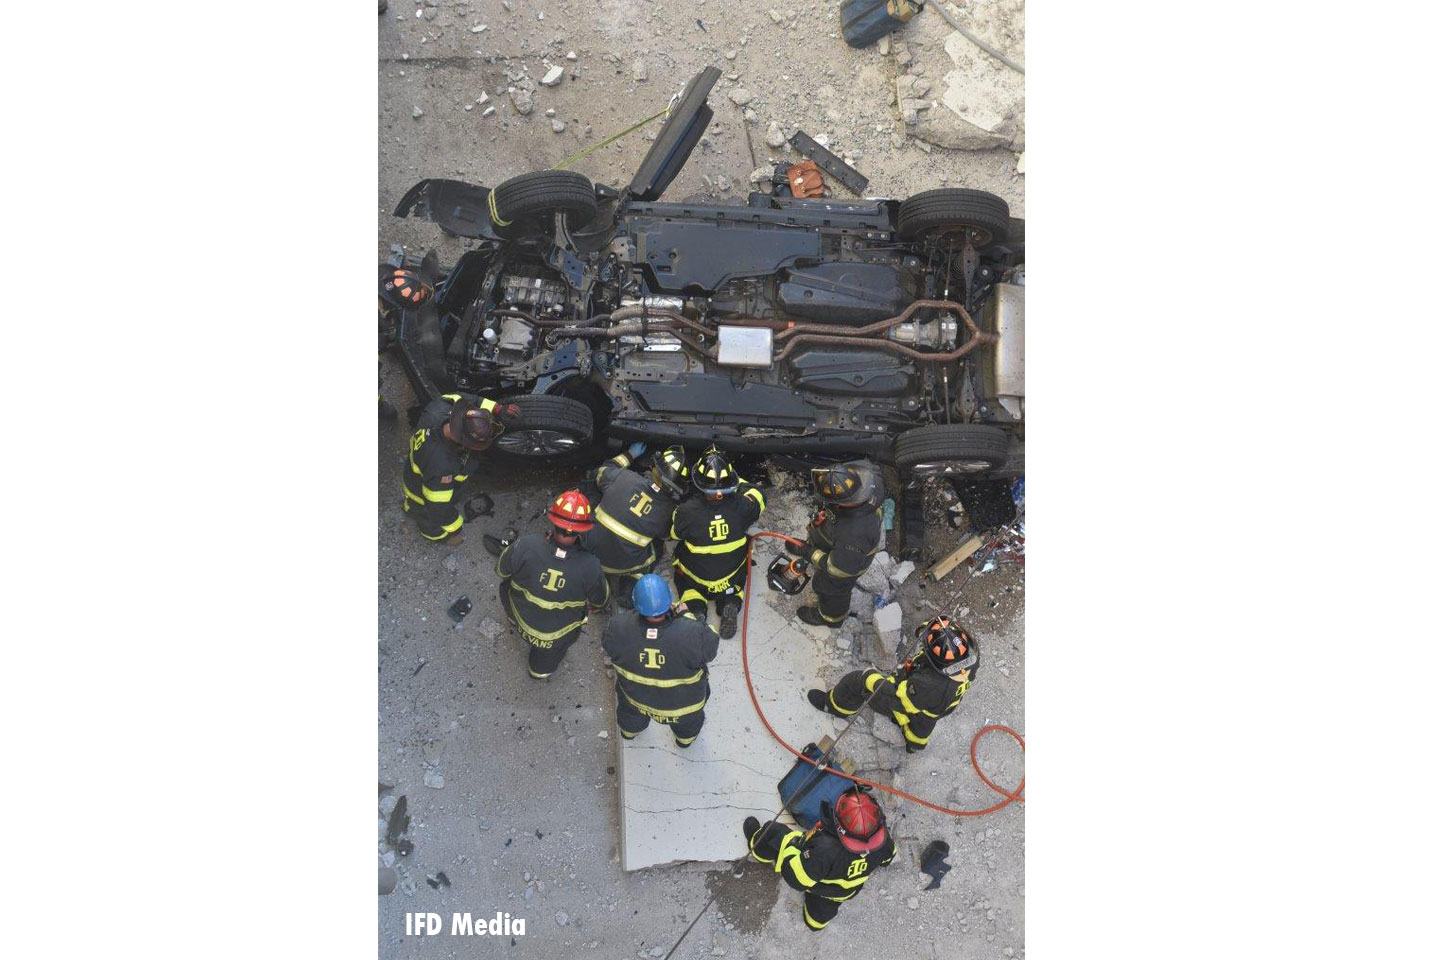 Firefighters work on the fallen vehicle.